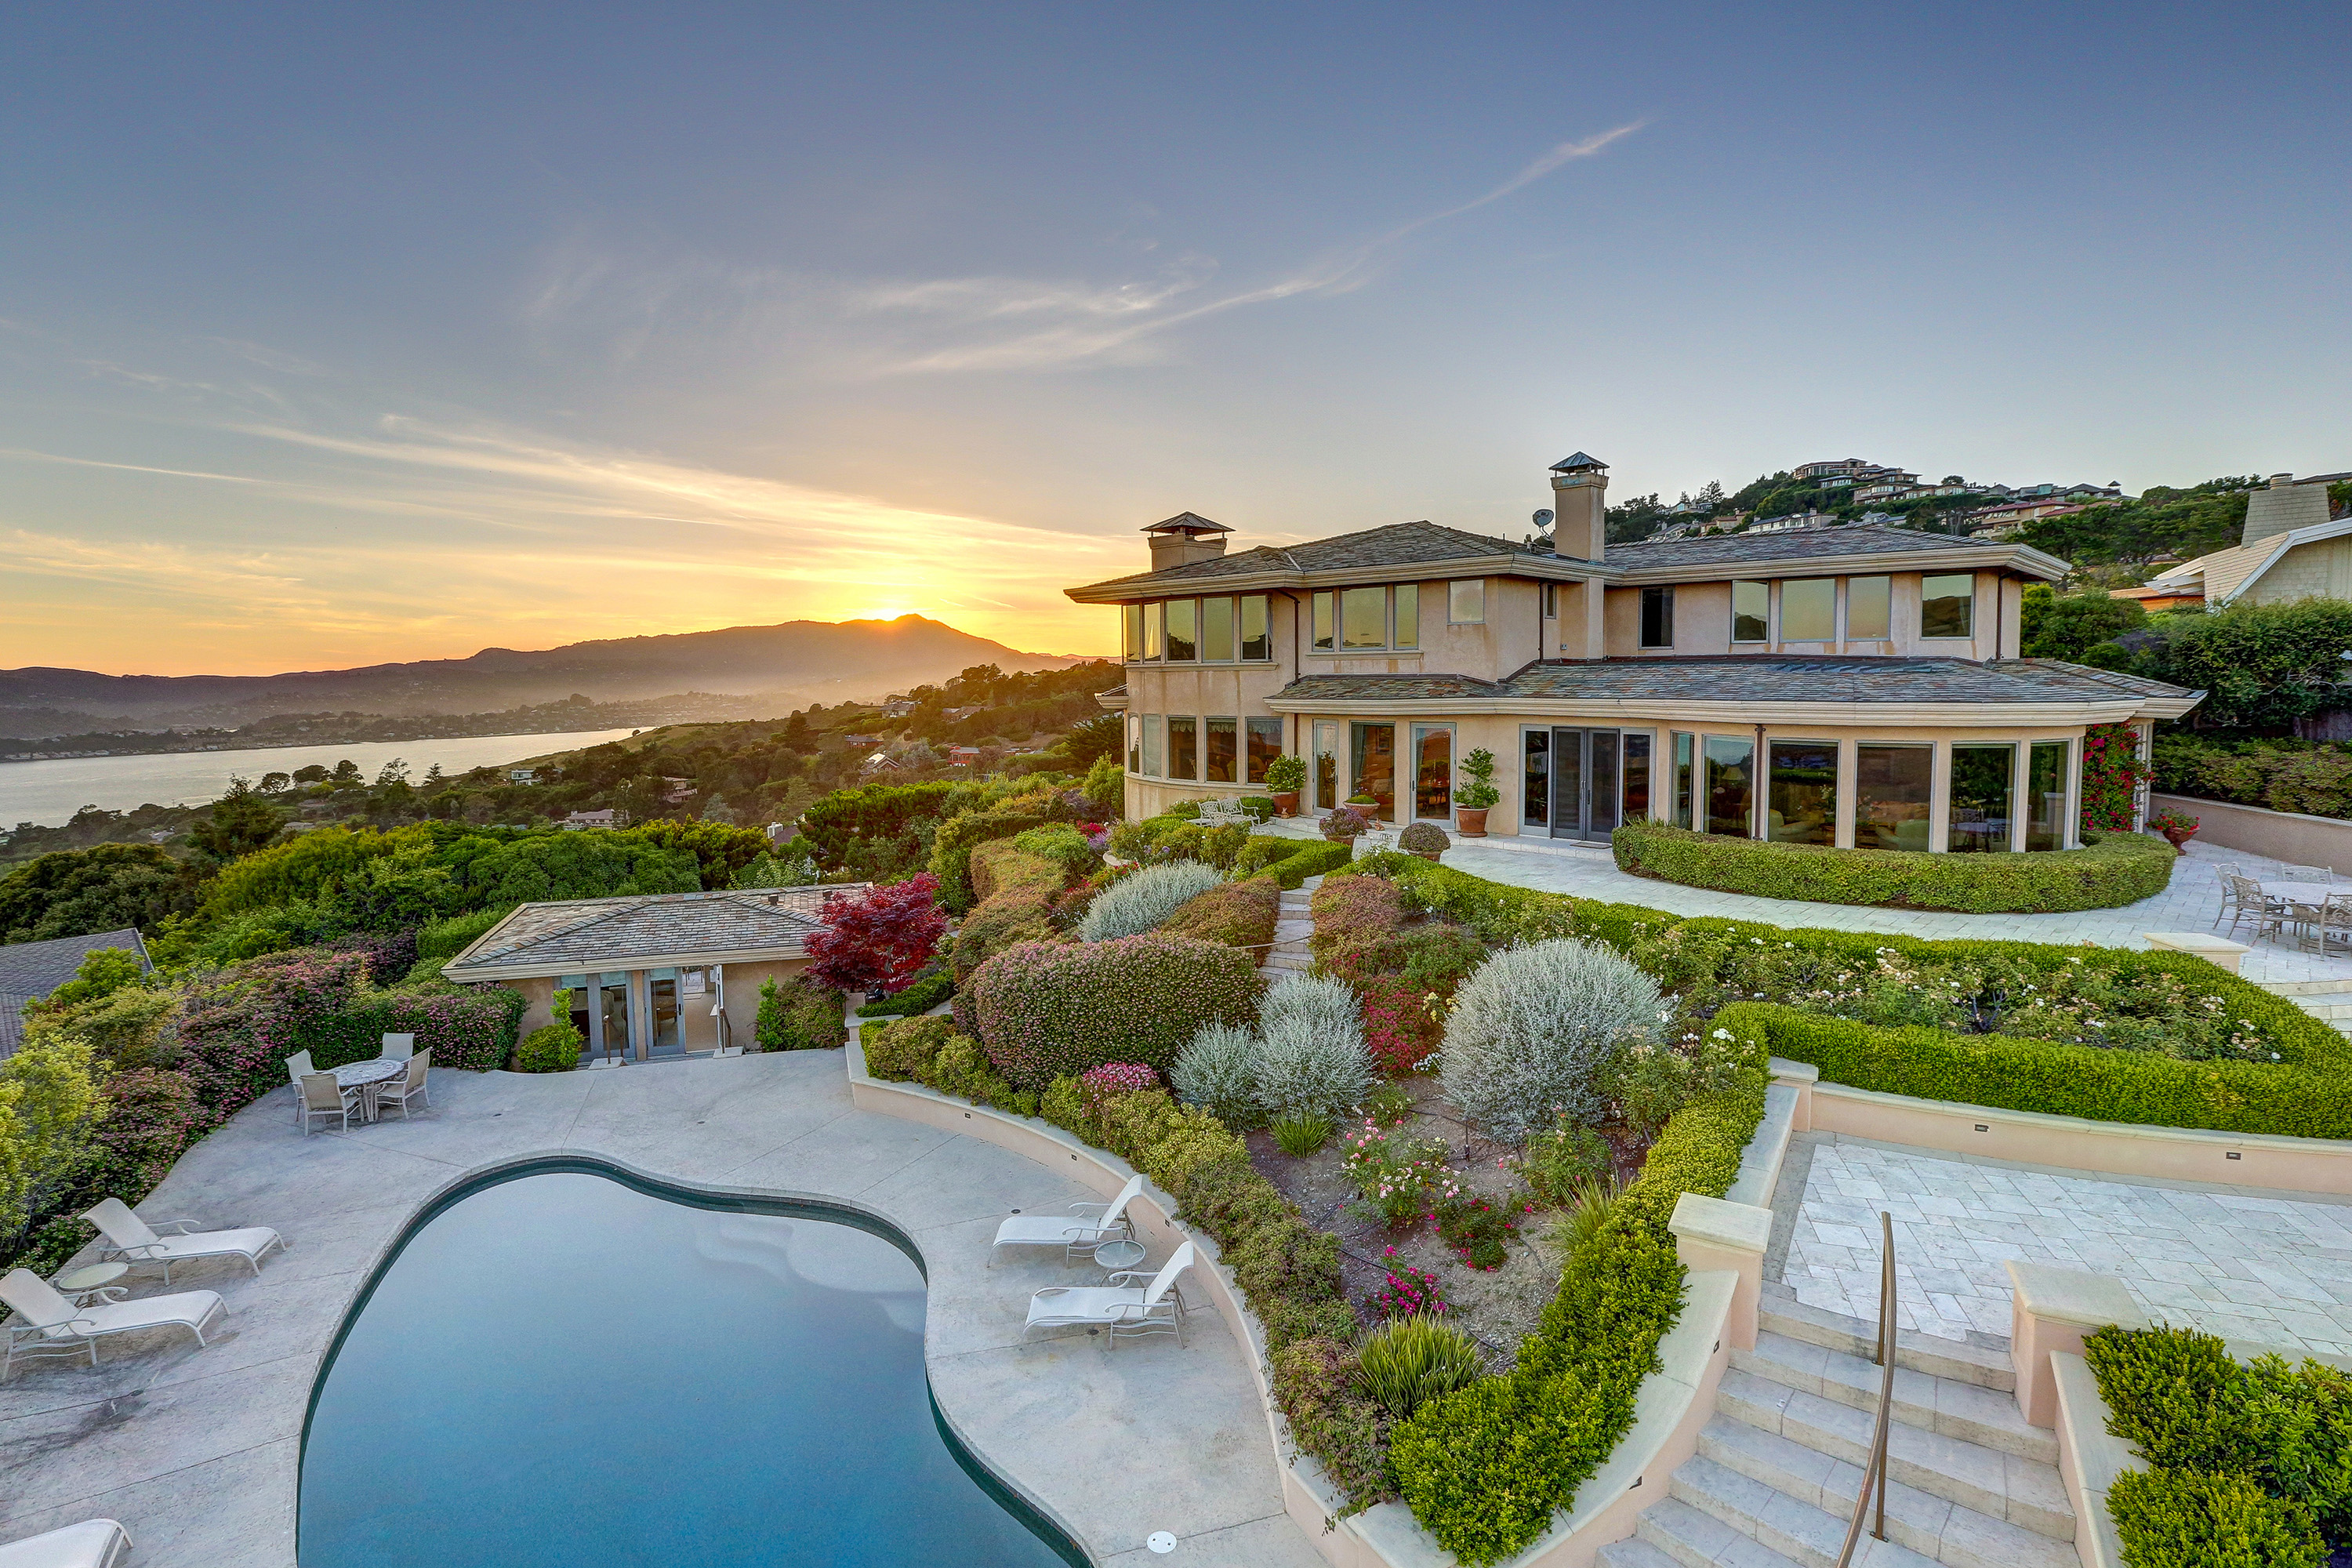 Maison unifamiliale pour l Vente à World Class Estate! 4 Santa Ana Ct Tiburon, Californie, 94920 États-Unis